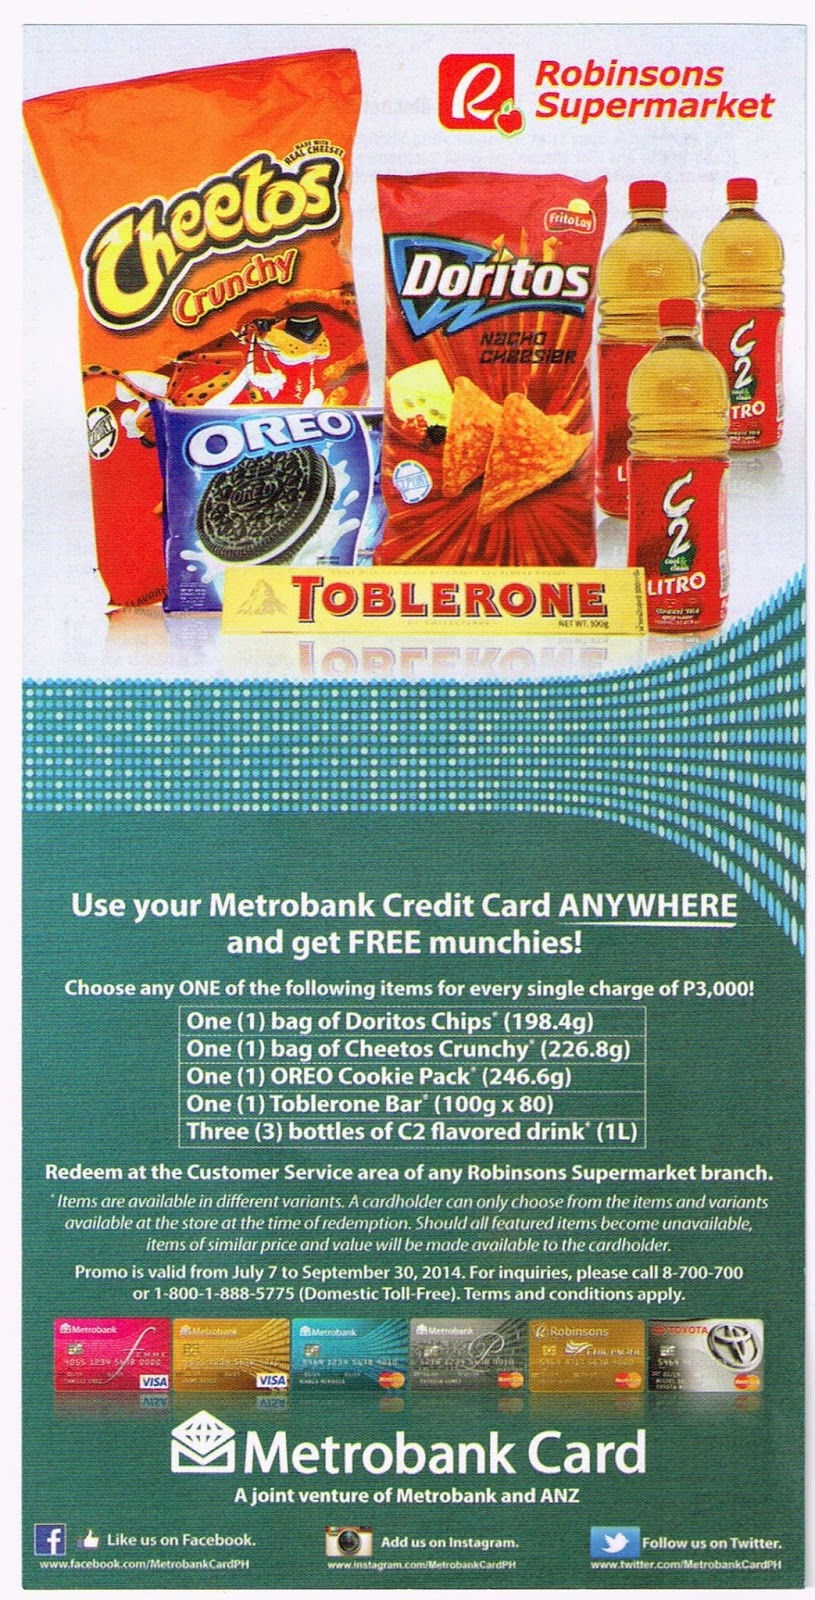 Use Your Metrobank Credit Card ANYWHERE And get Free Munchies